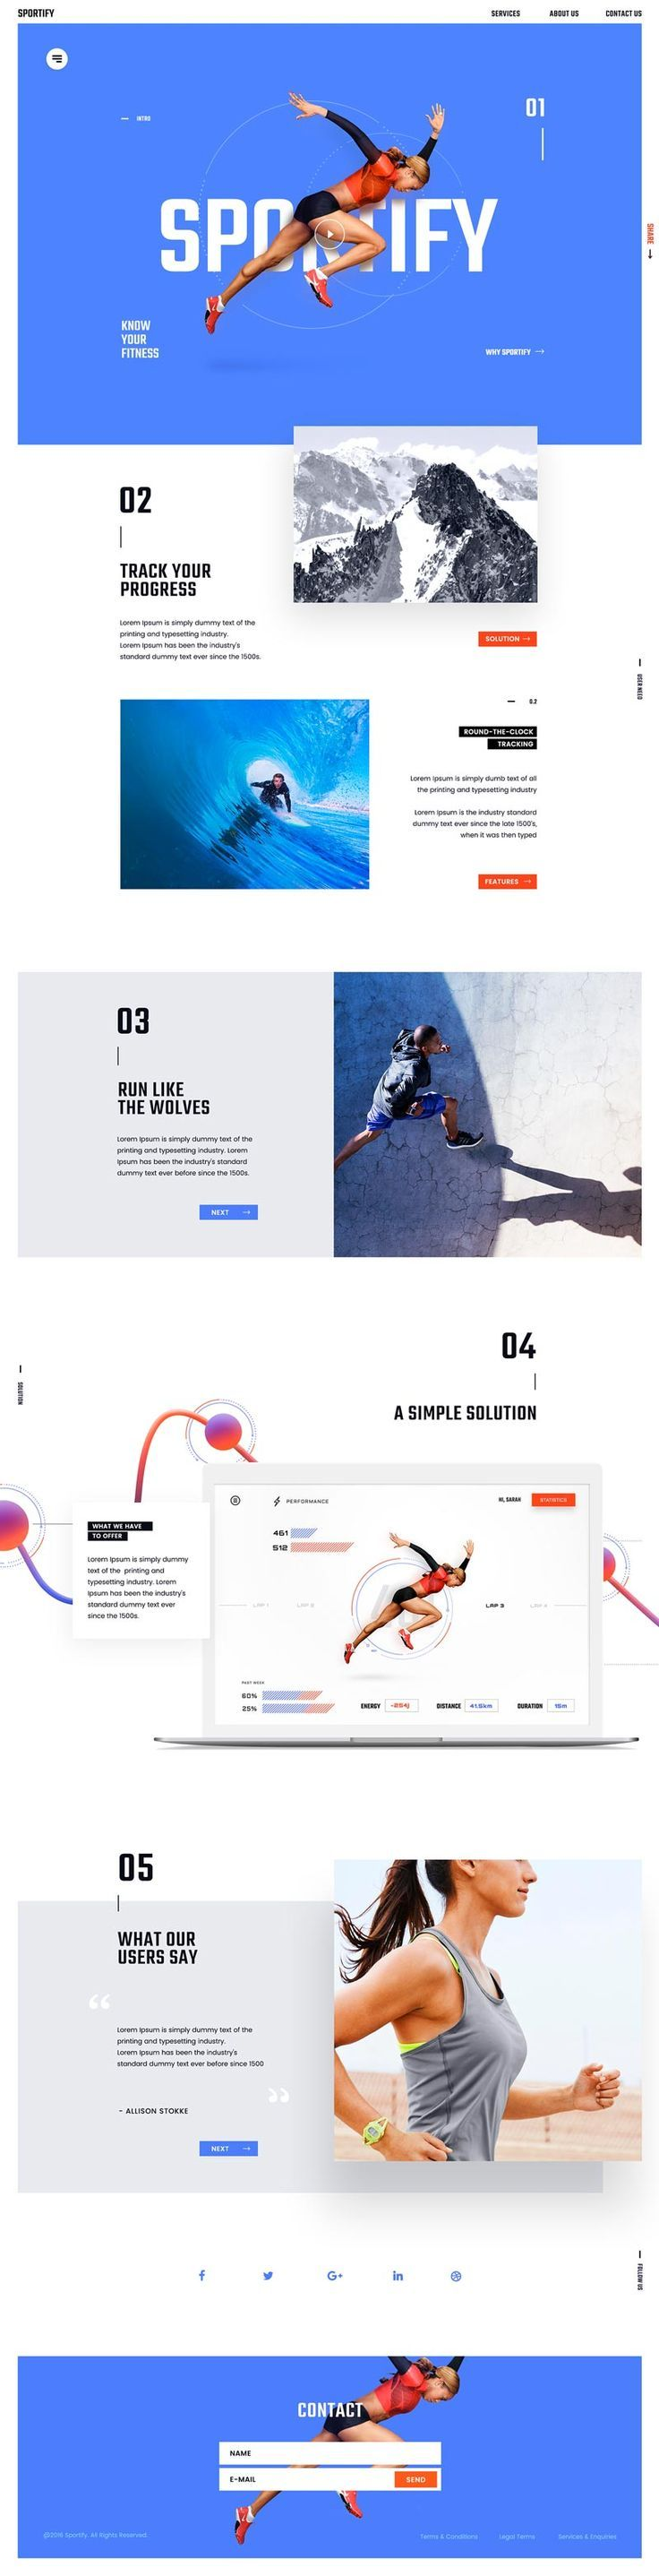 Best website design of march web design pinterest web